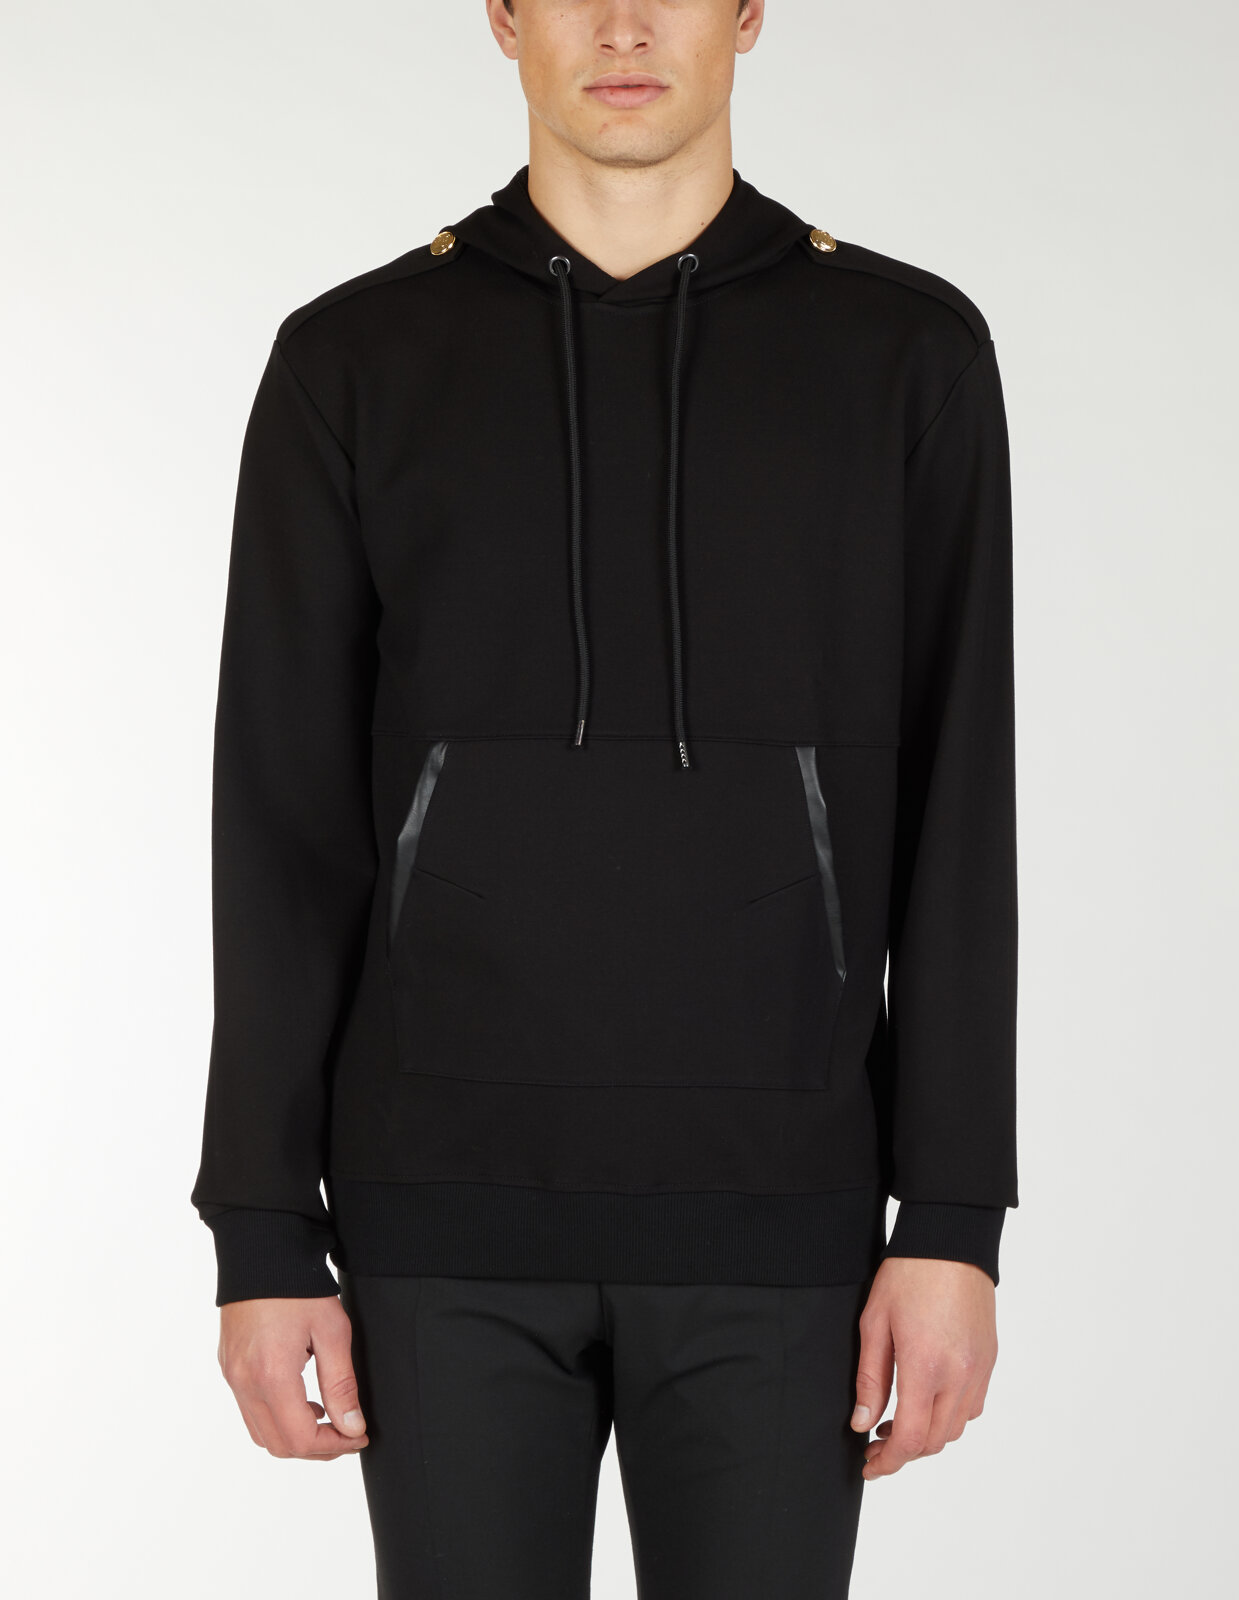 Hoodie With Net And Leather - Les Hommes